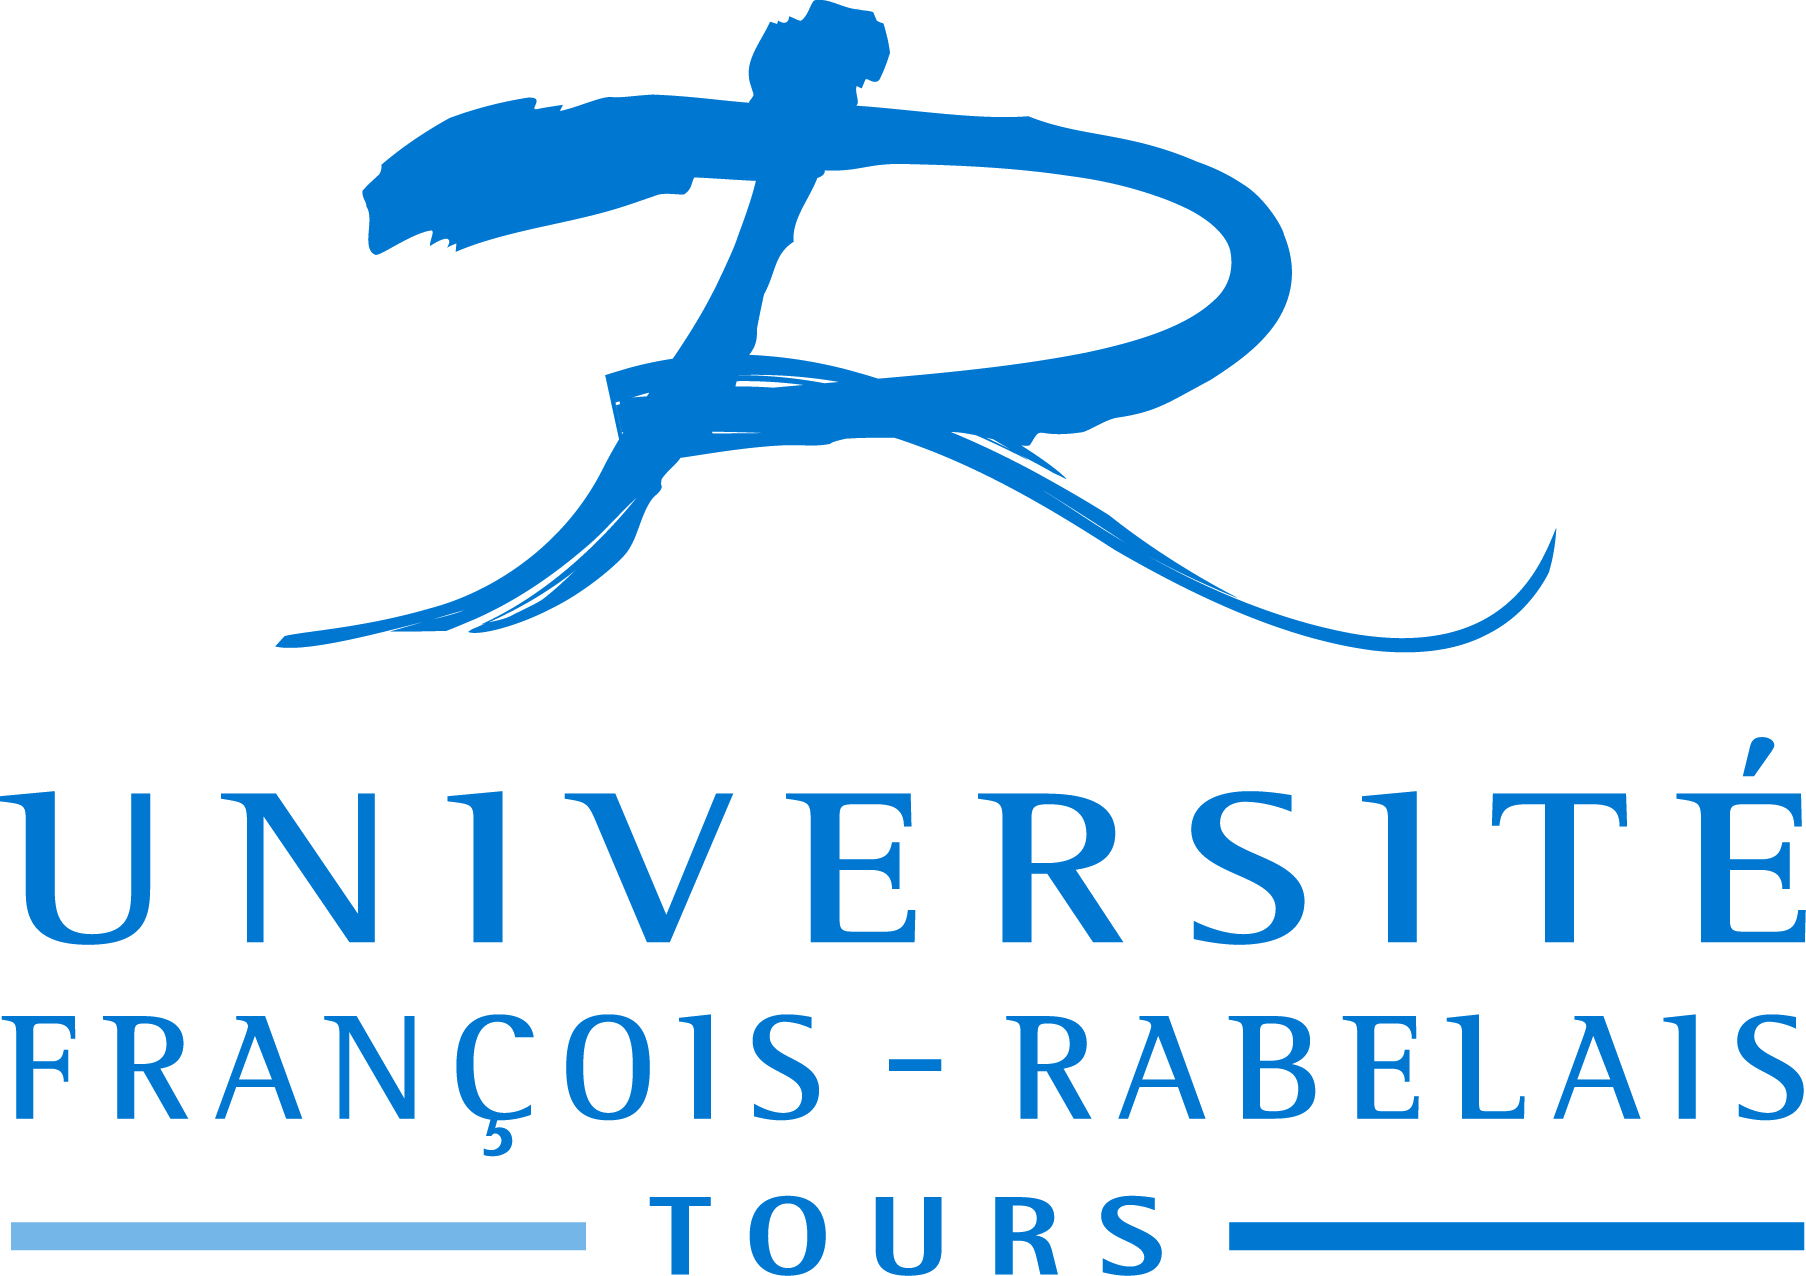 Université François Rabelais